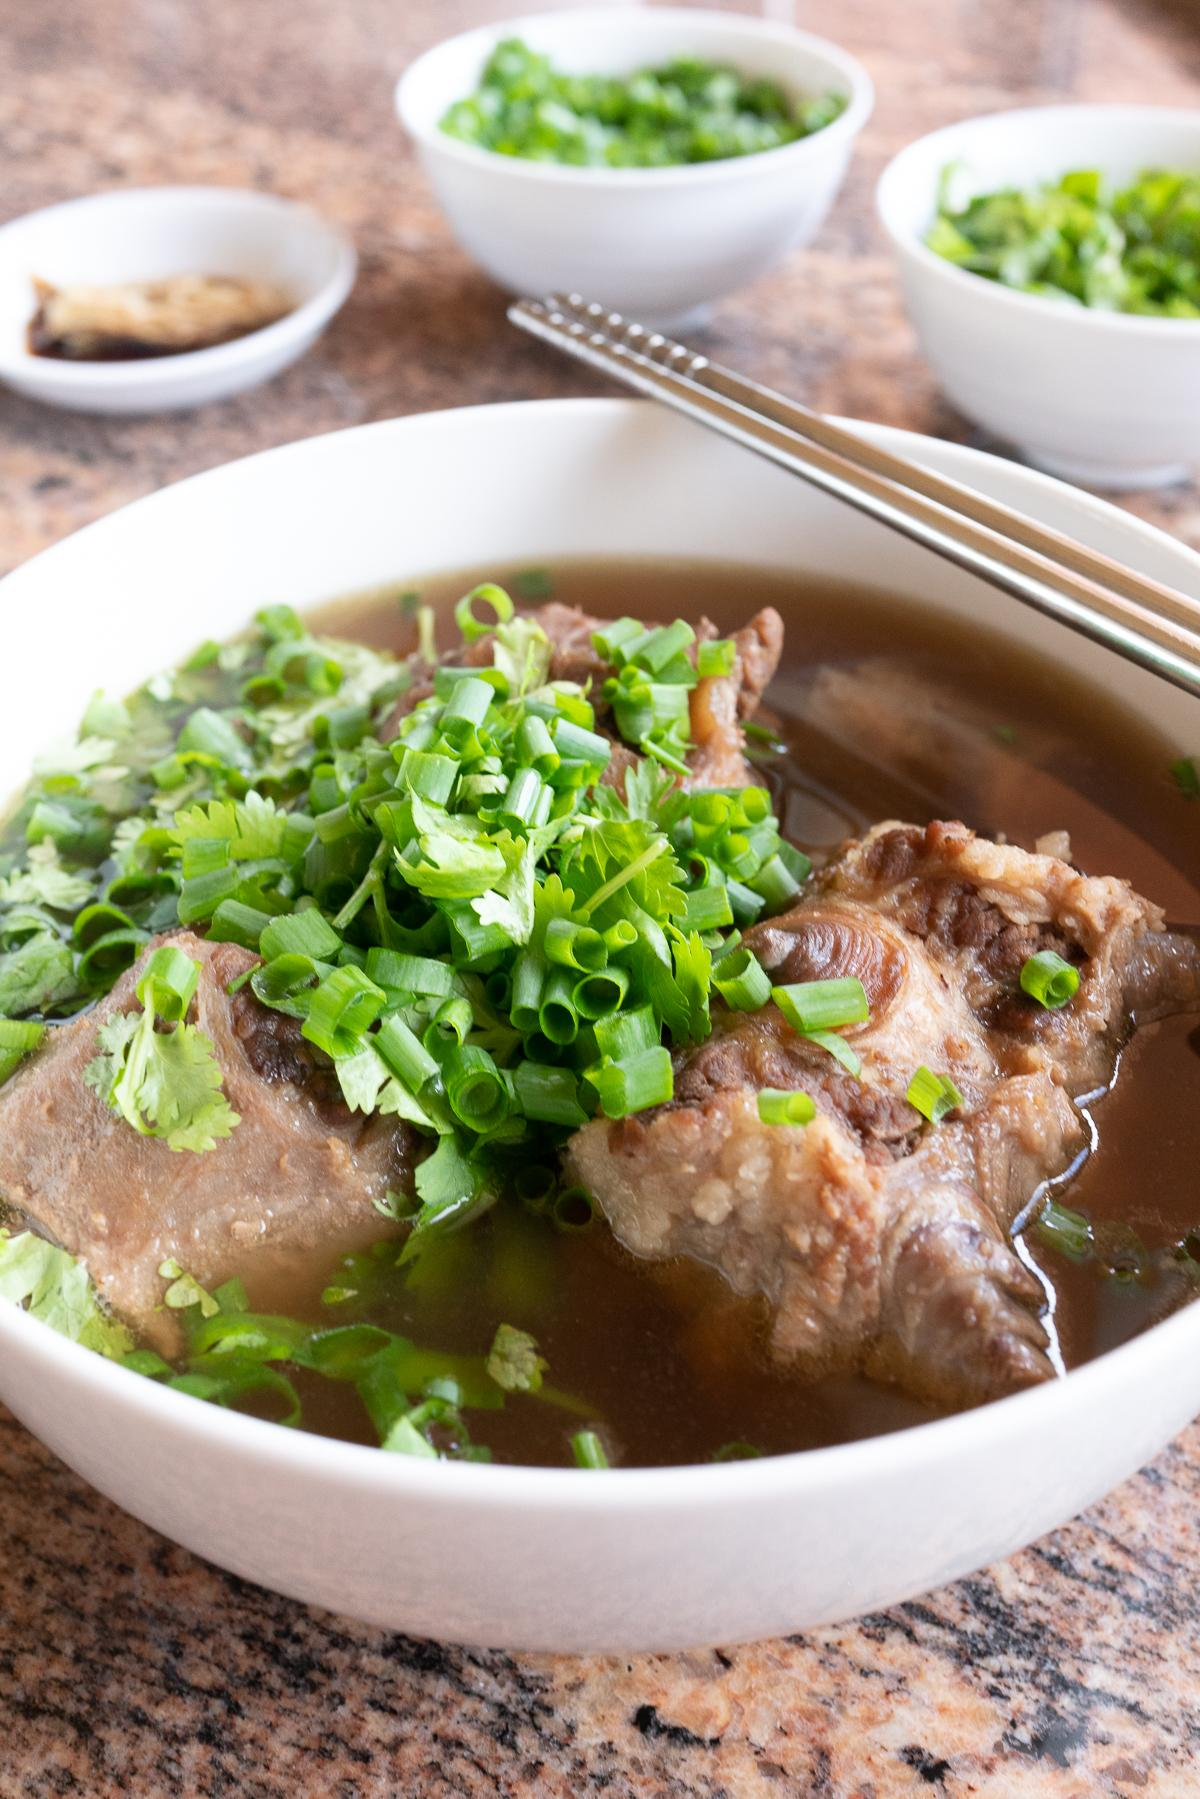 A bowl of oxtail soup with green onions and cilantro sprinkled on top.